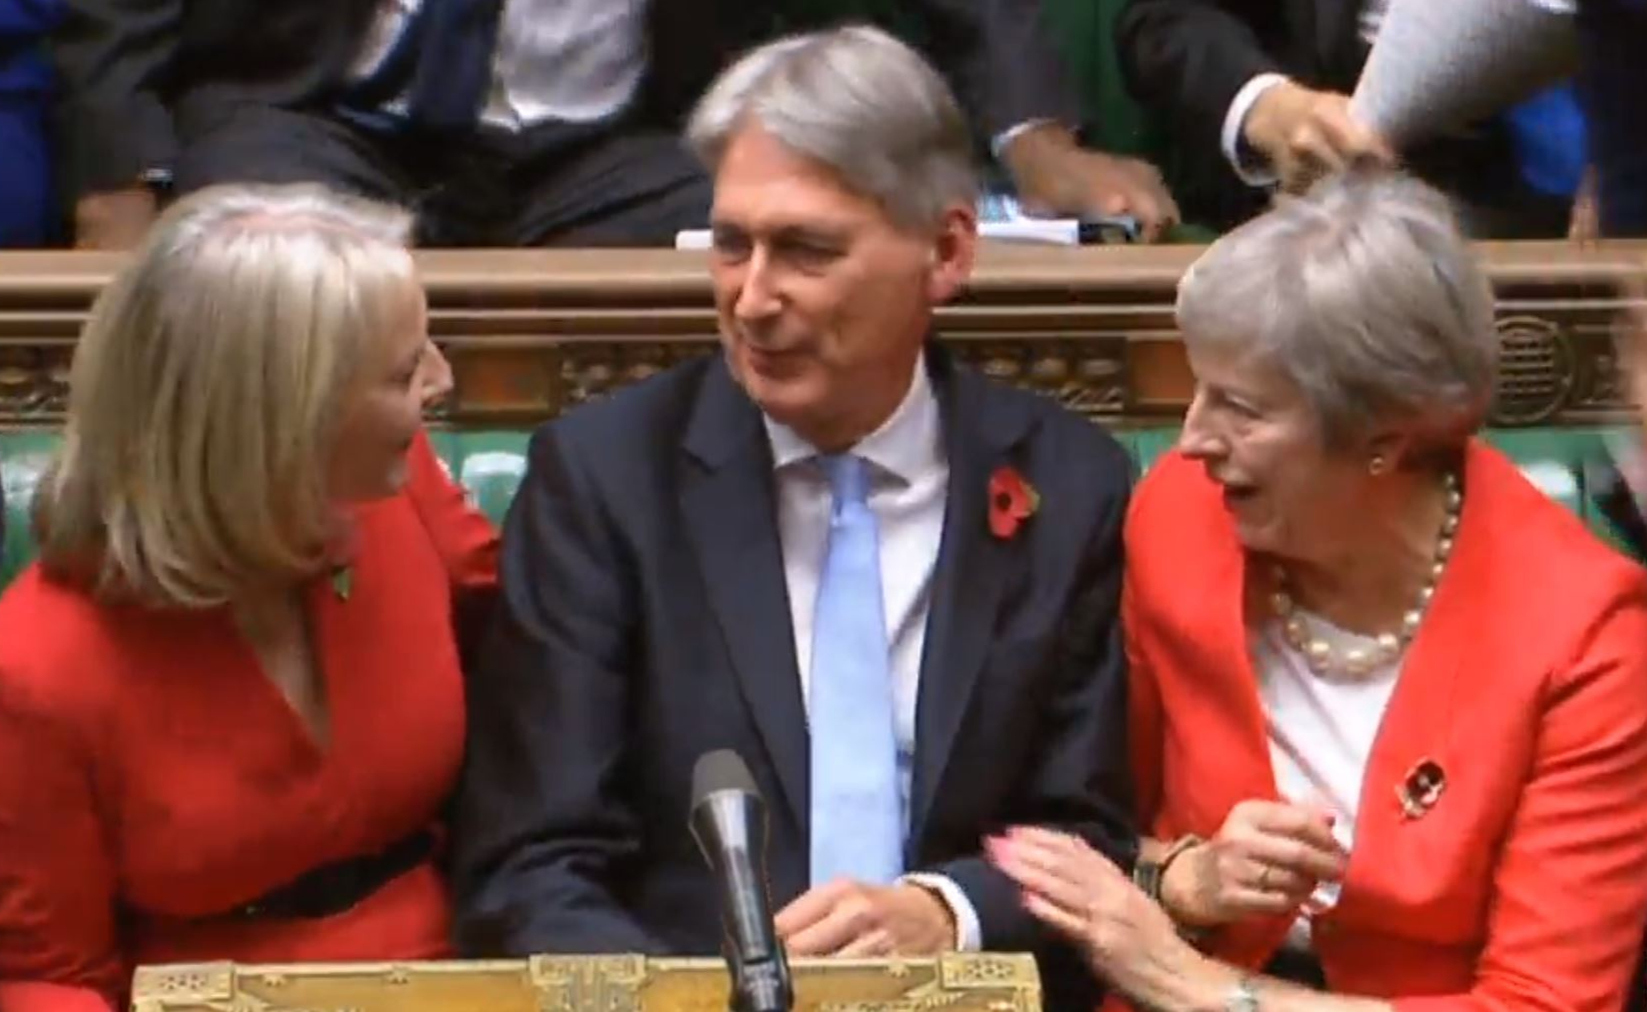 IN THE RED: Philip Hammond is congratulated by Treasury Chief Secretary Liz Truss and Prime Minister Theresa May, but he committed Britain to brrowing at least £20bn-a-year for the next five years